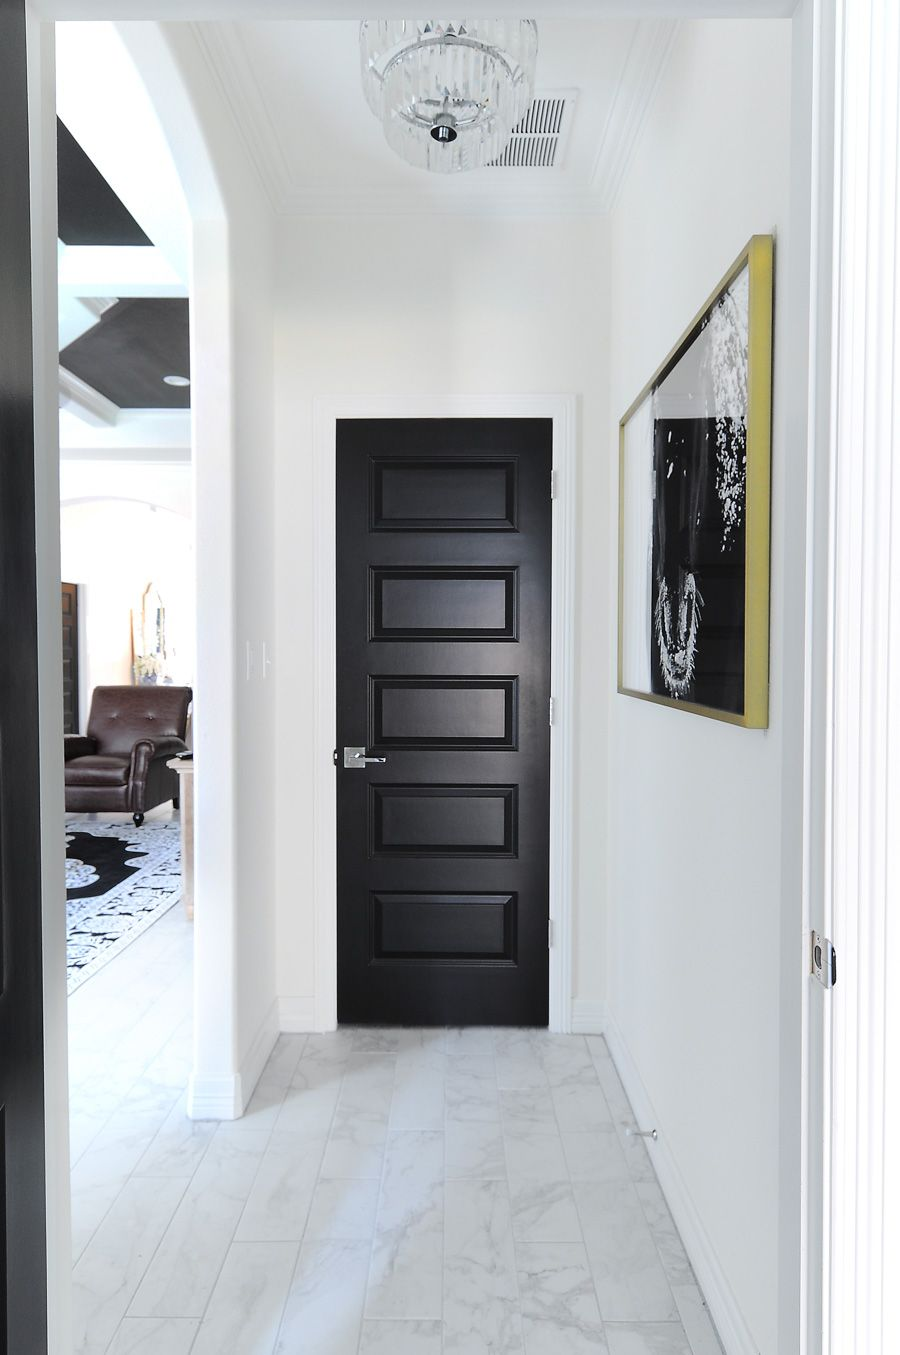 Black interior doors make a bold statement against white walls in this modern home with traditional touches